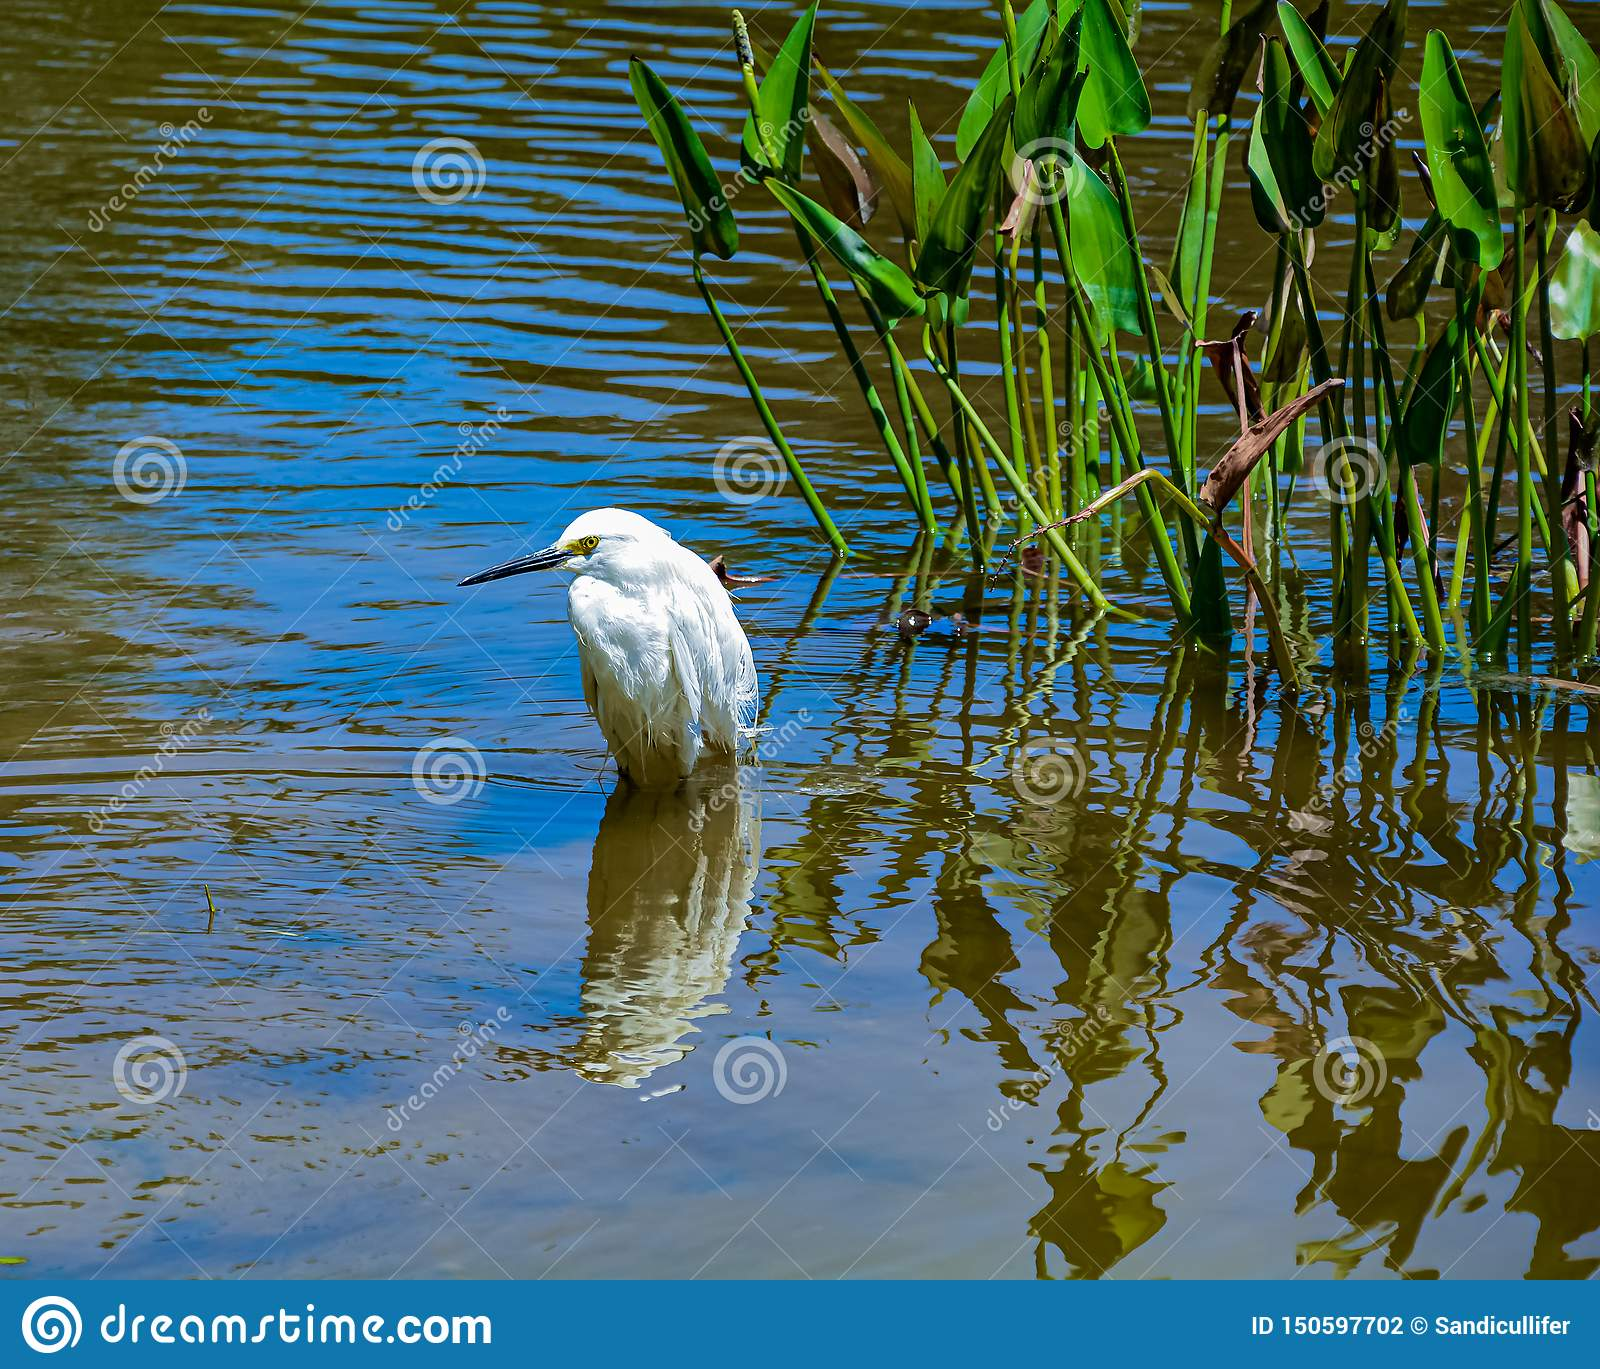 Snowy Egret Standing in a Florida Wetland